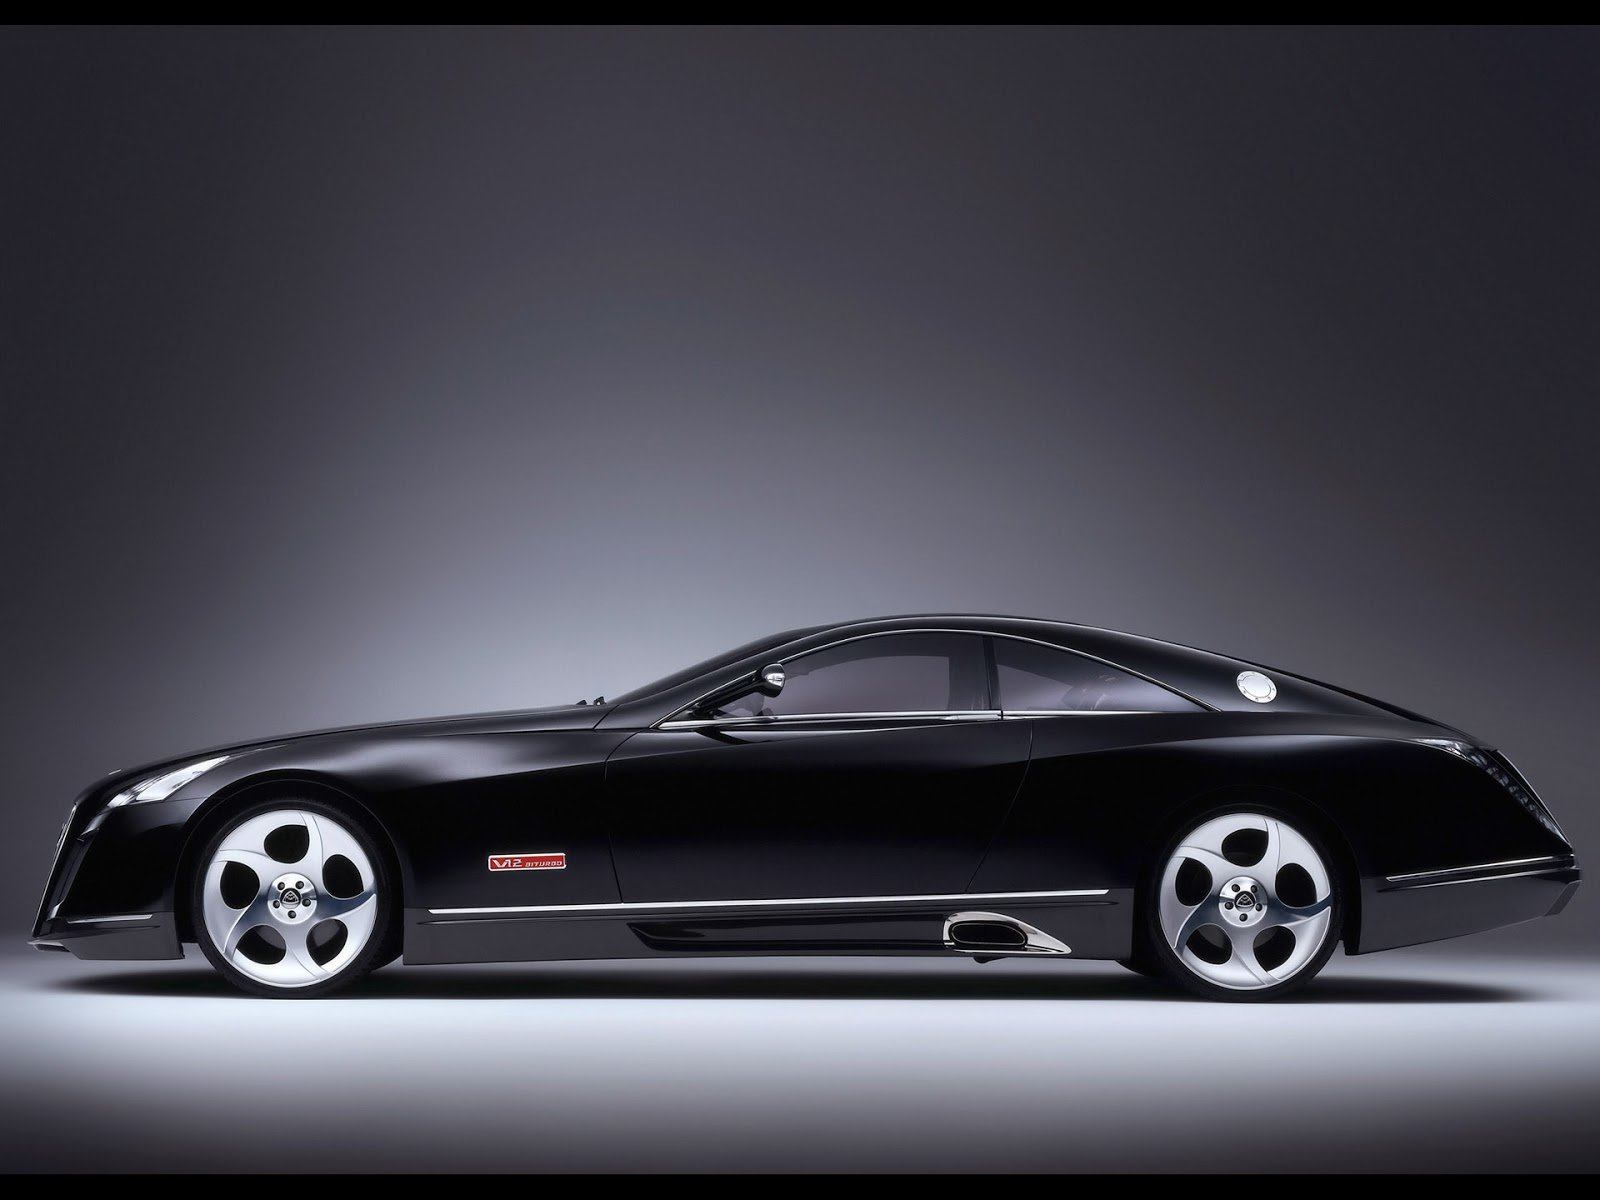 Latest Cool Car Wallpapers Maybach Cars 2013 Free Download